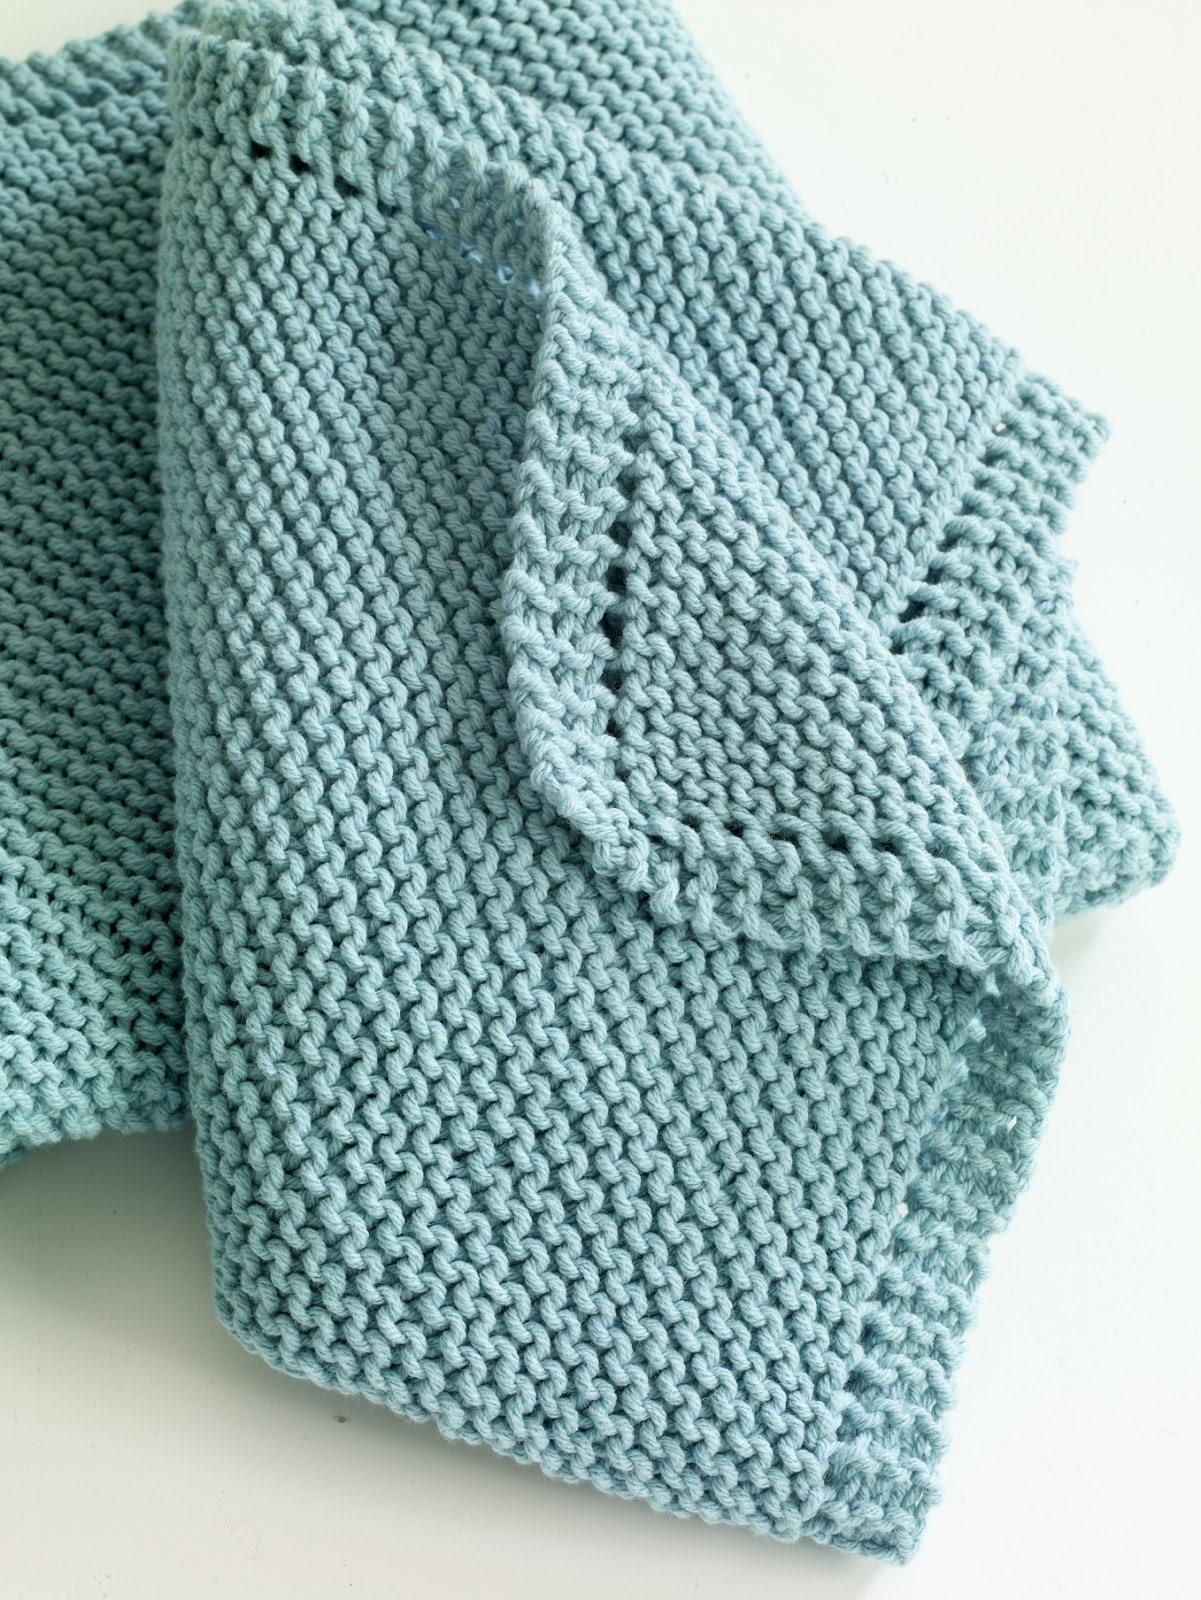 Easy Baby Blanket Knitting Patterns For Beginners : Serenity Knits